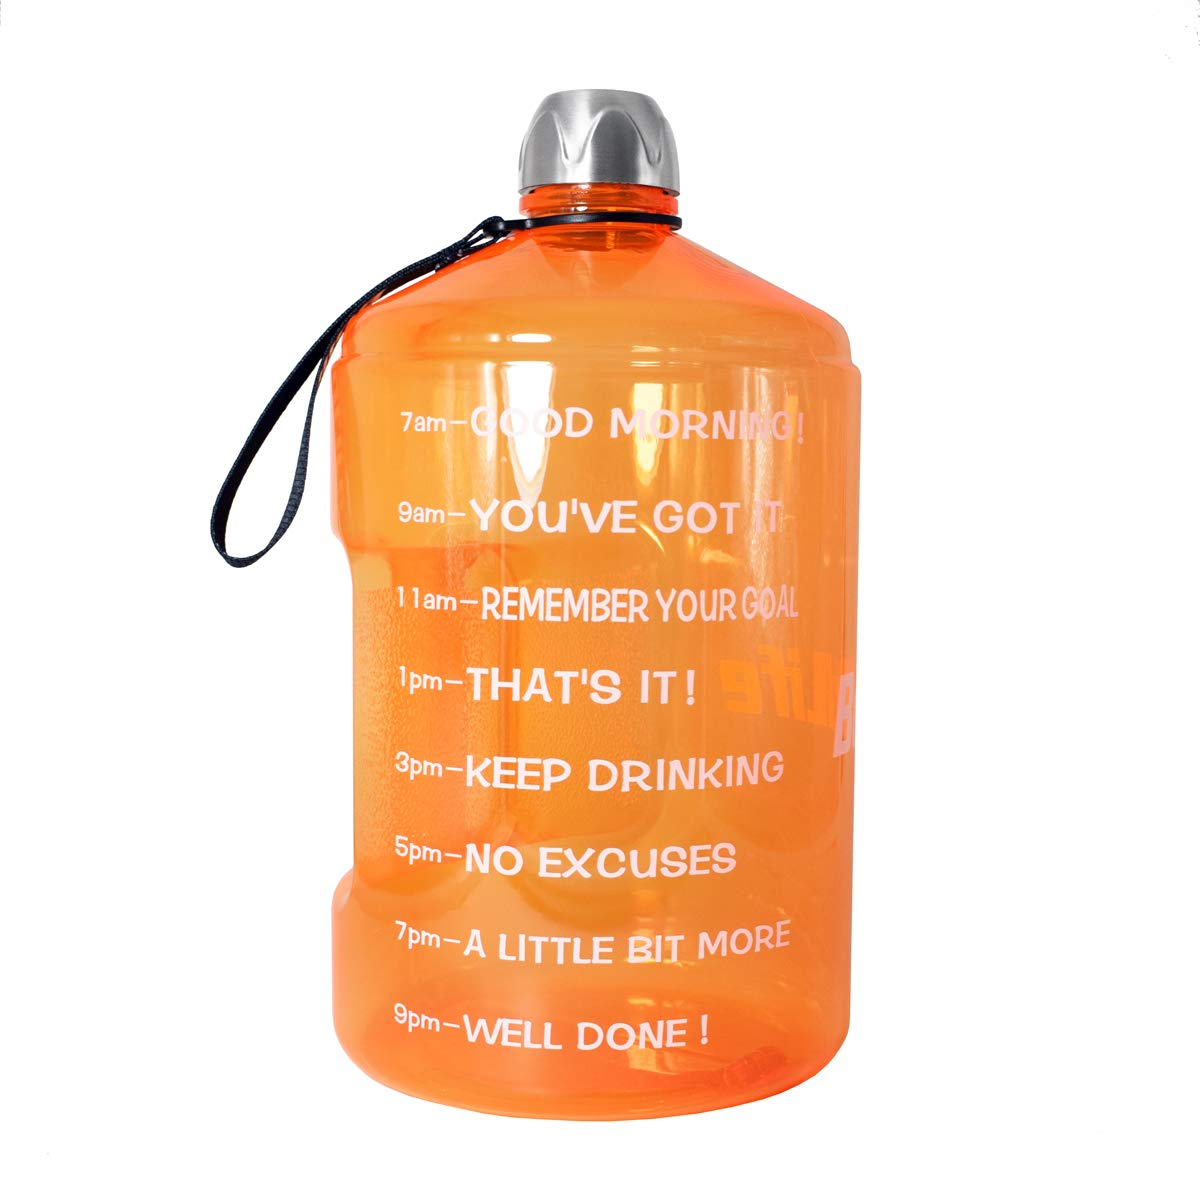 BuildLife 1 Gallon Water Bottle Motivational Fitness Workout with Time Marker  Drink More Water Daily   Clear BPA-Free   Large 128 Ounce/43OZ of Water Throughout The Day (1 Gallon-Orange, 1 Gallon)